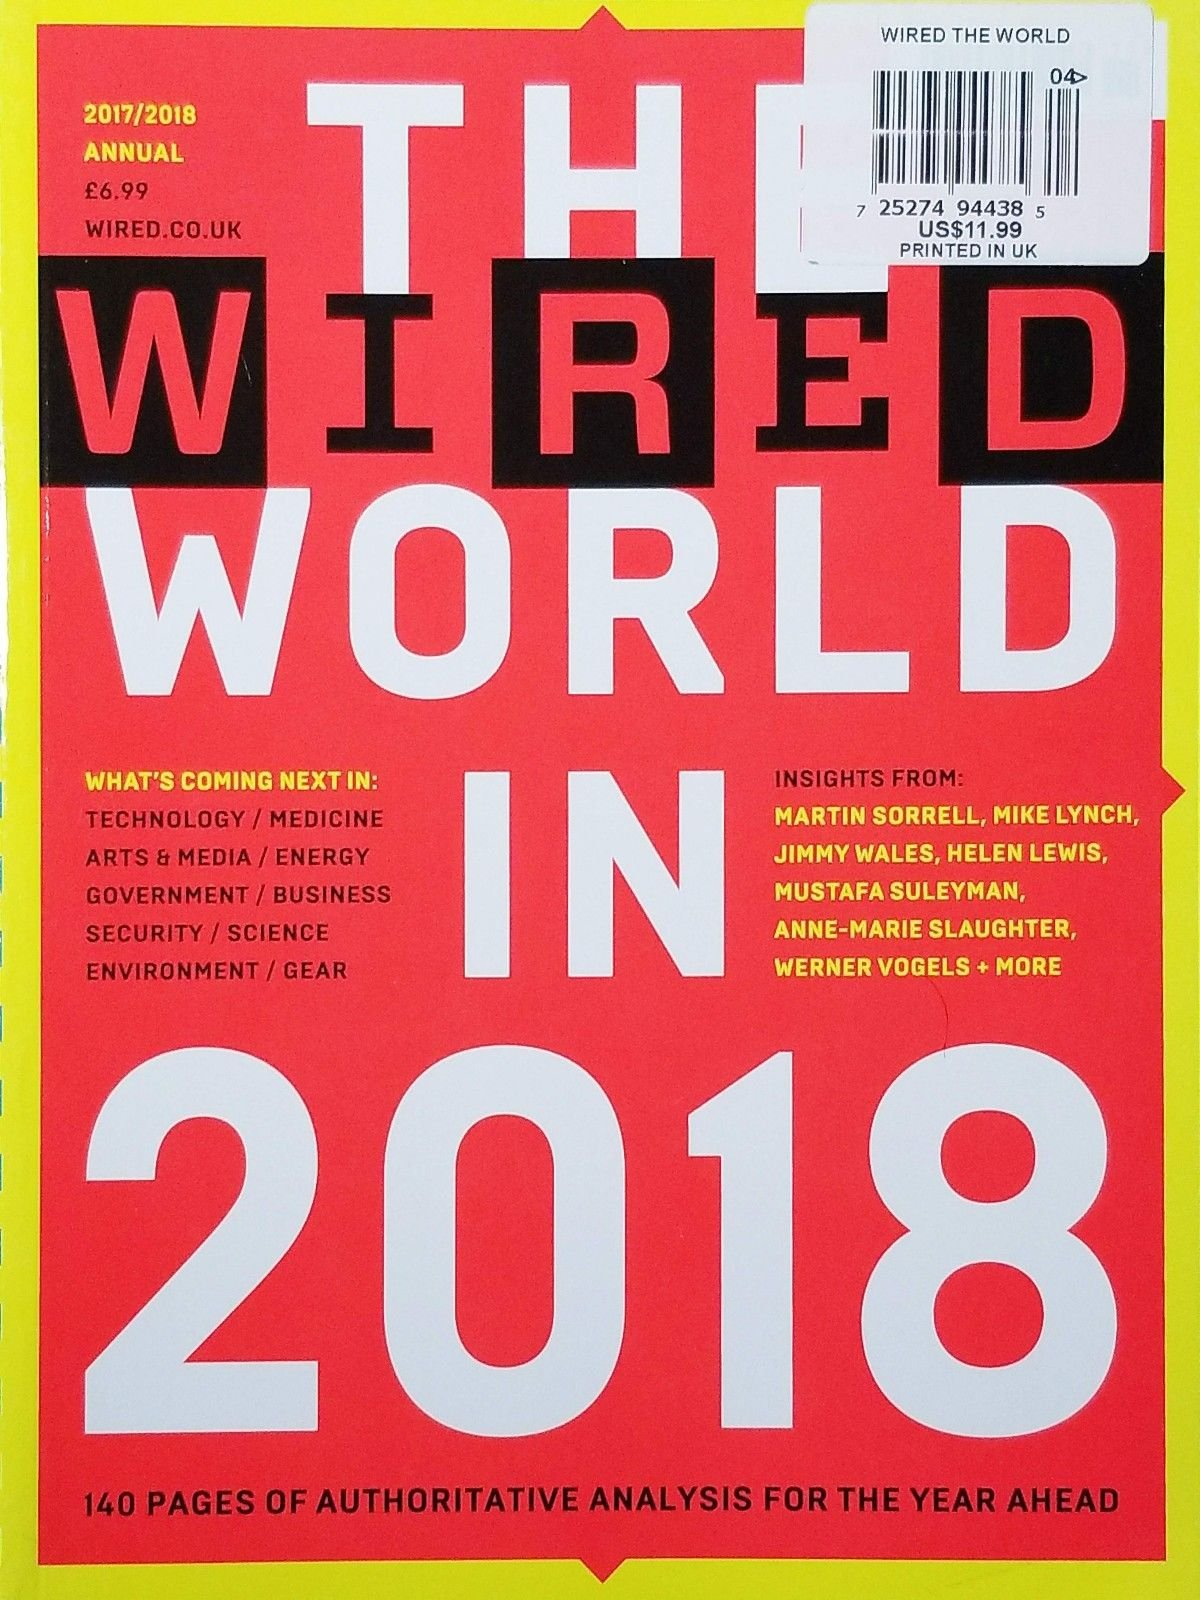 THE WIRED WORLD IN 2018 2017/2017 ANNUAL 140 PAGES OF AUTHORITATIVE ANALYSIS^